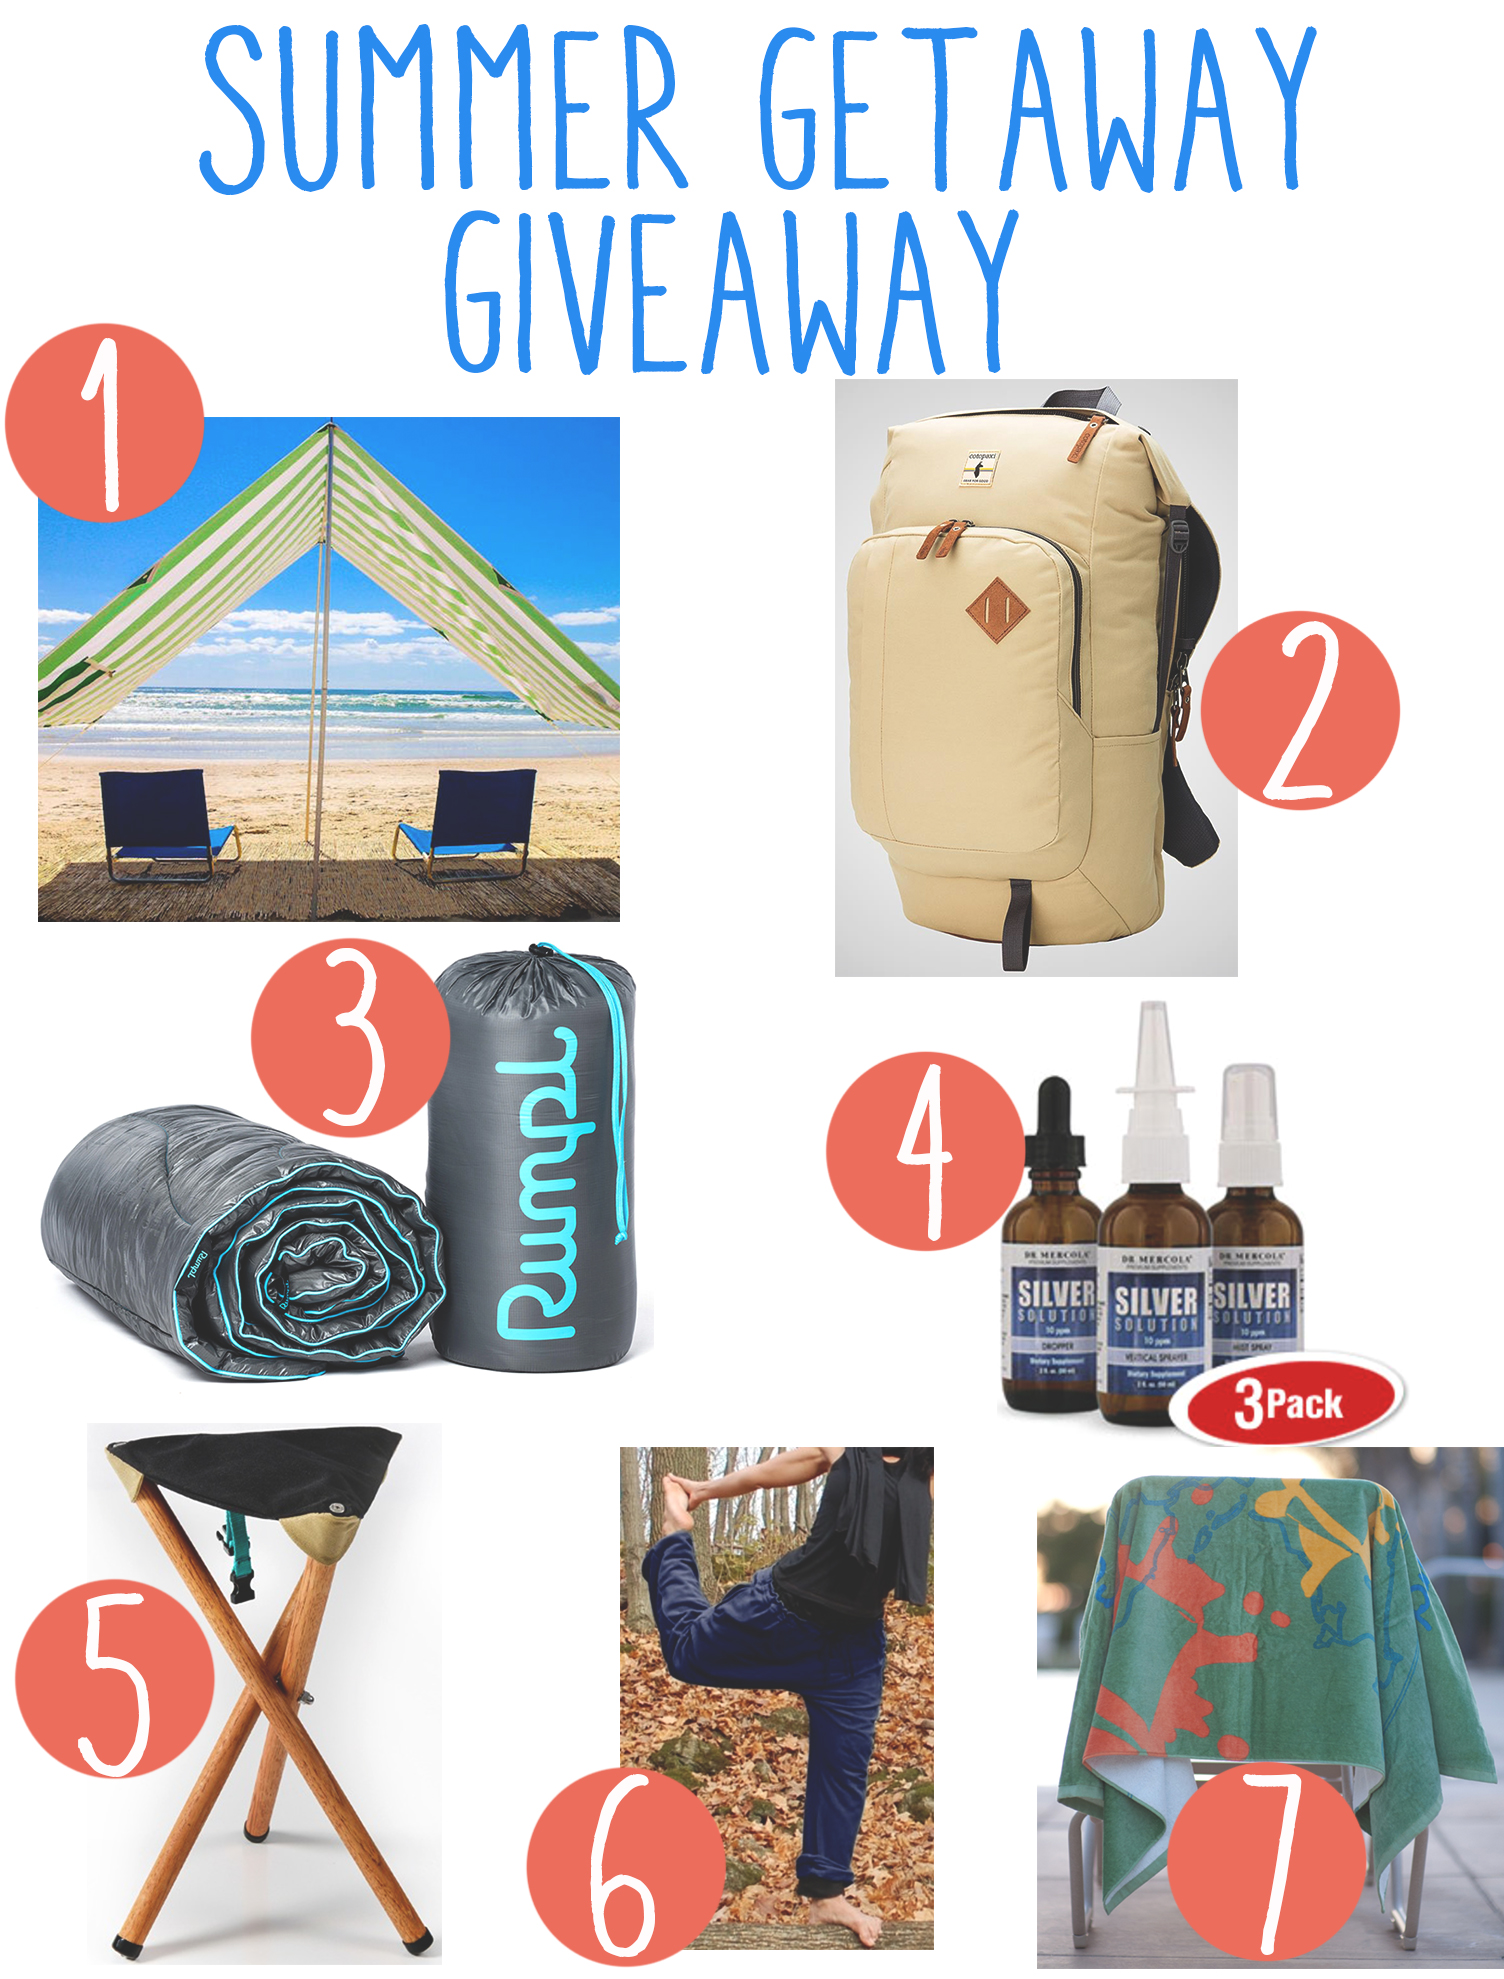 Pin now and enter to win this great summer getaway giveaway!